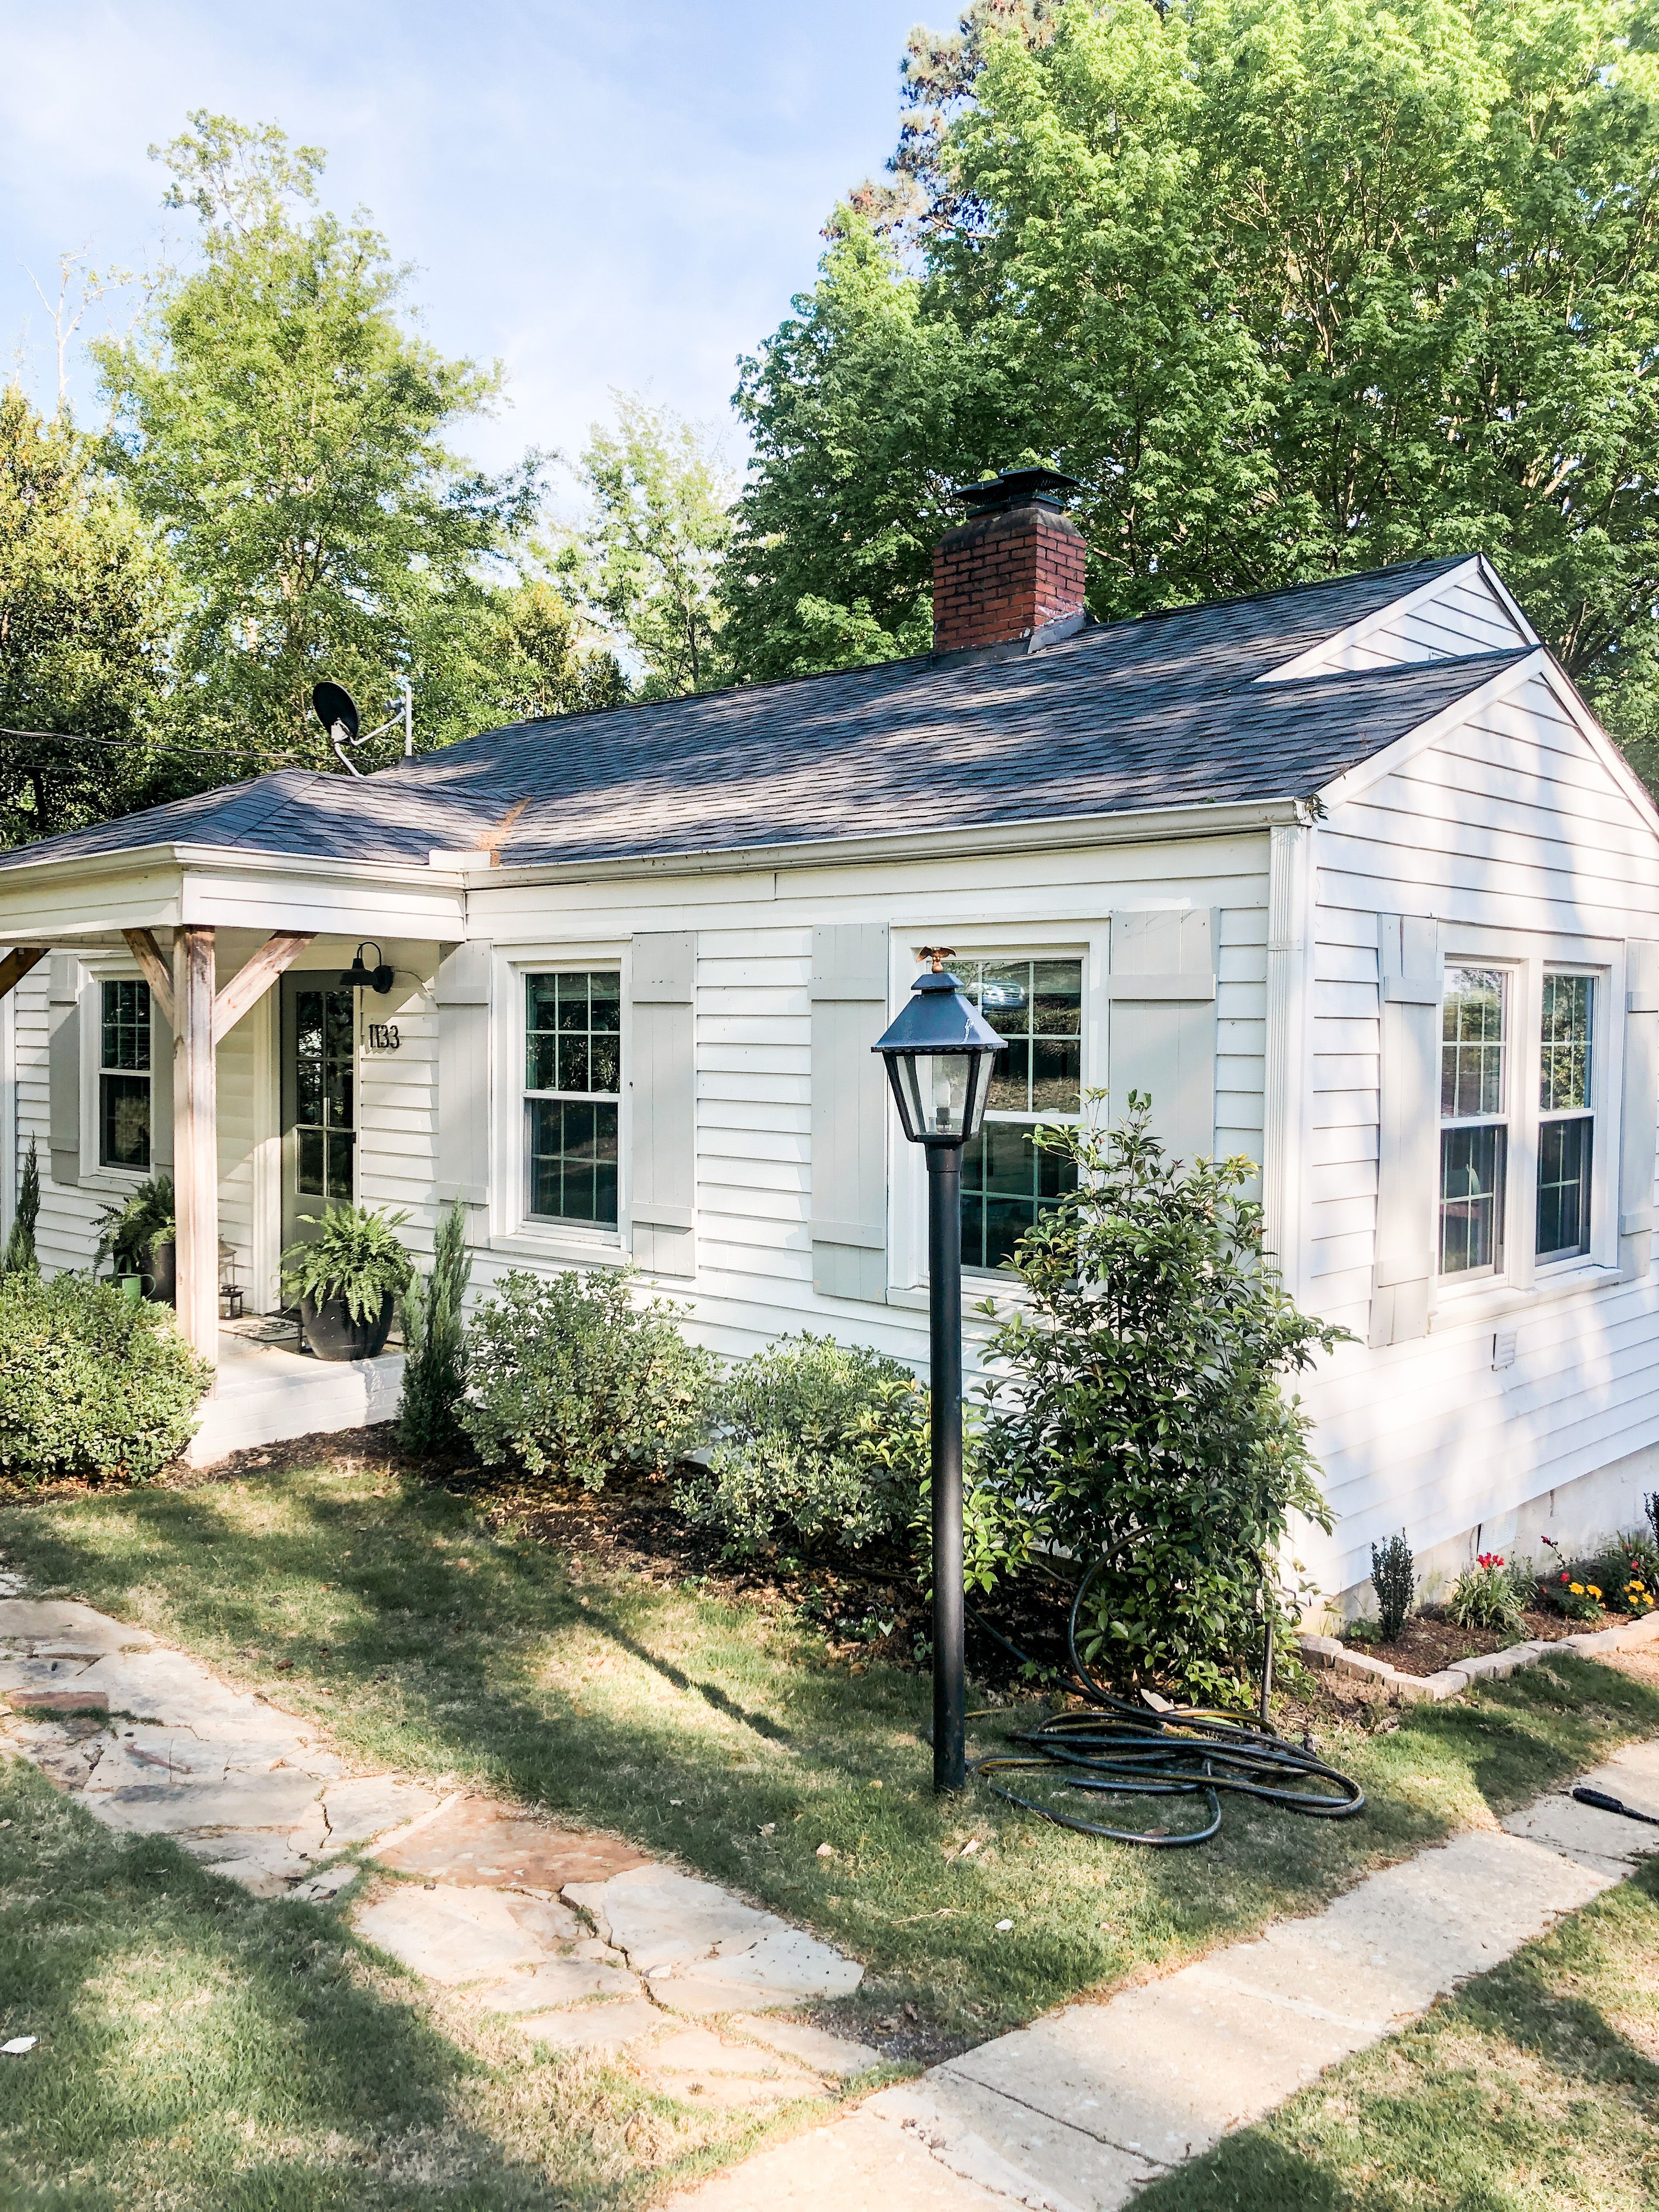 #cozyhome #cottage #curbappeal